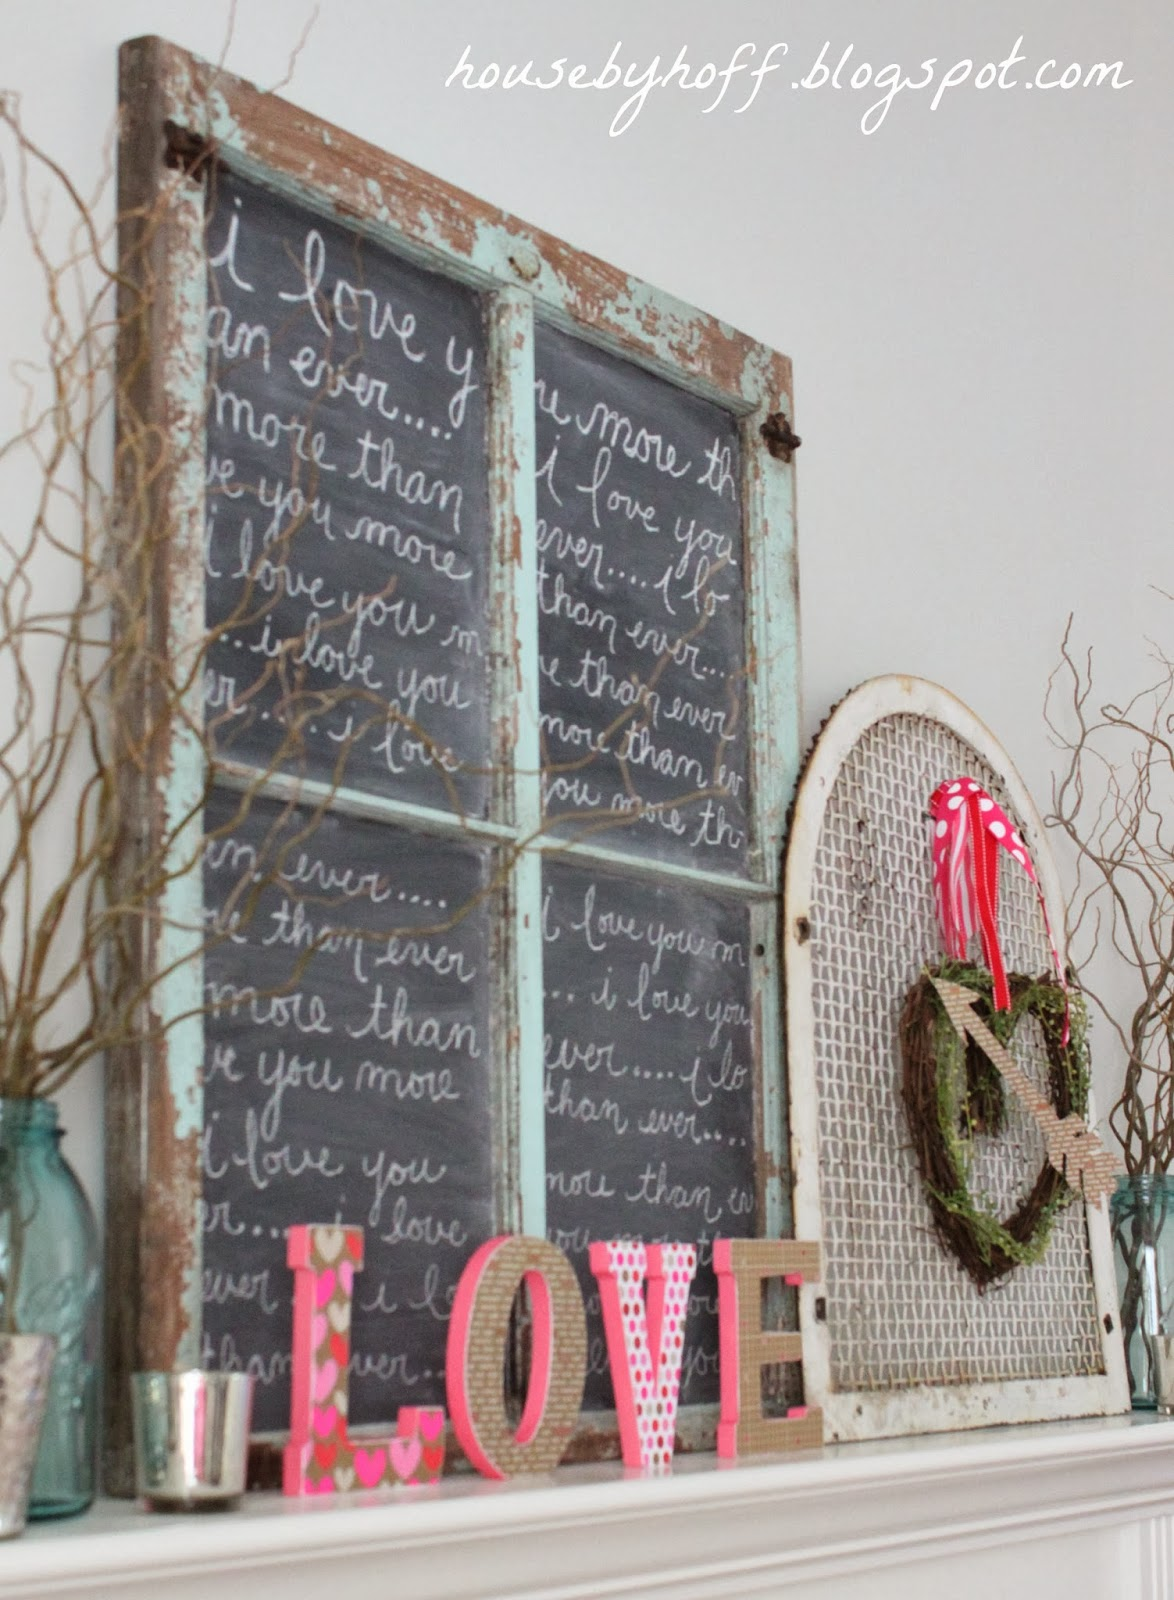 A love sign on the mantel beside the wreath.